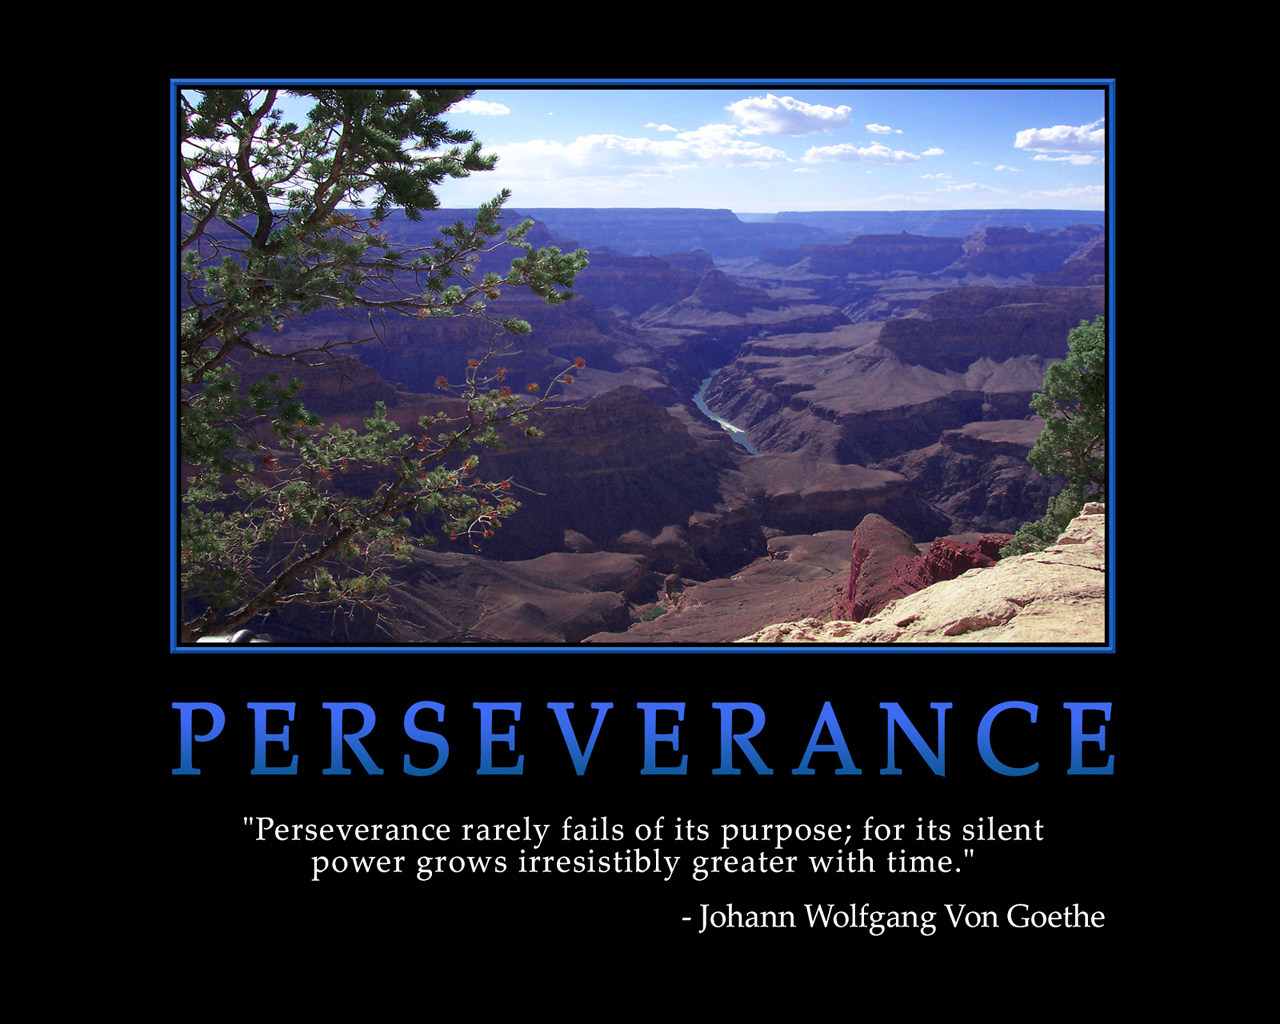 Persistence Motivational Quotes Cartoon: Great Quotes On Perseverance. QuotesGram